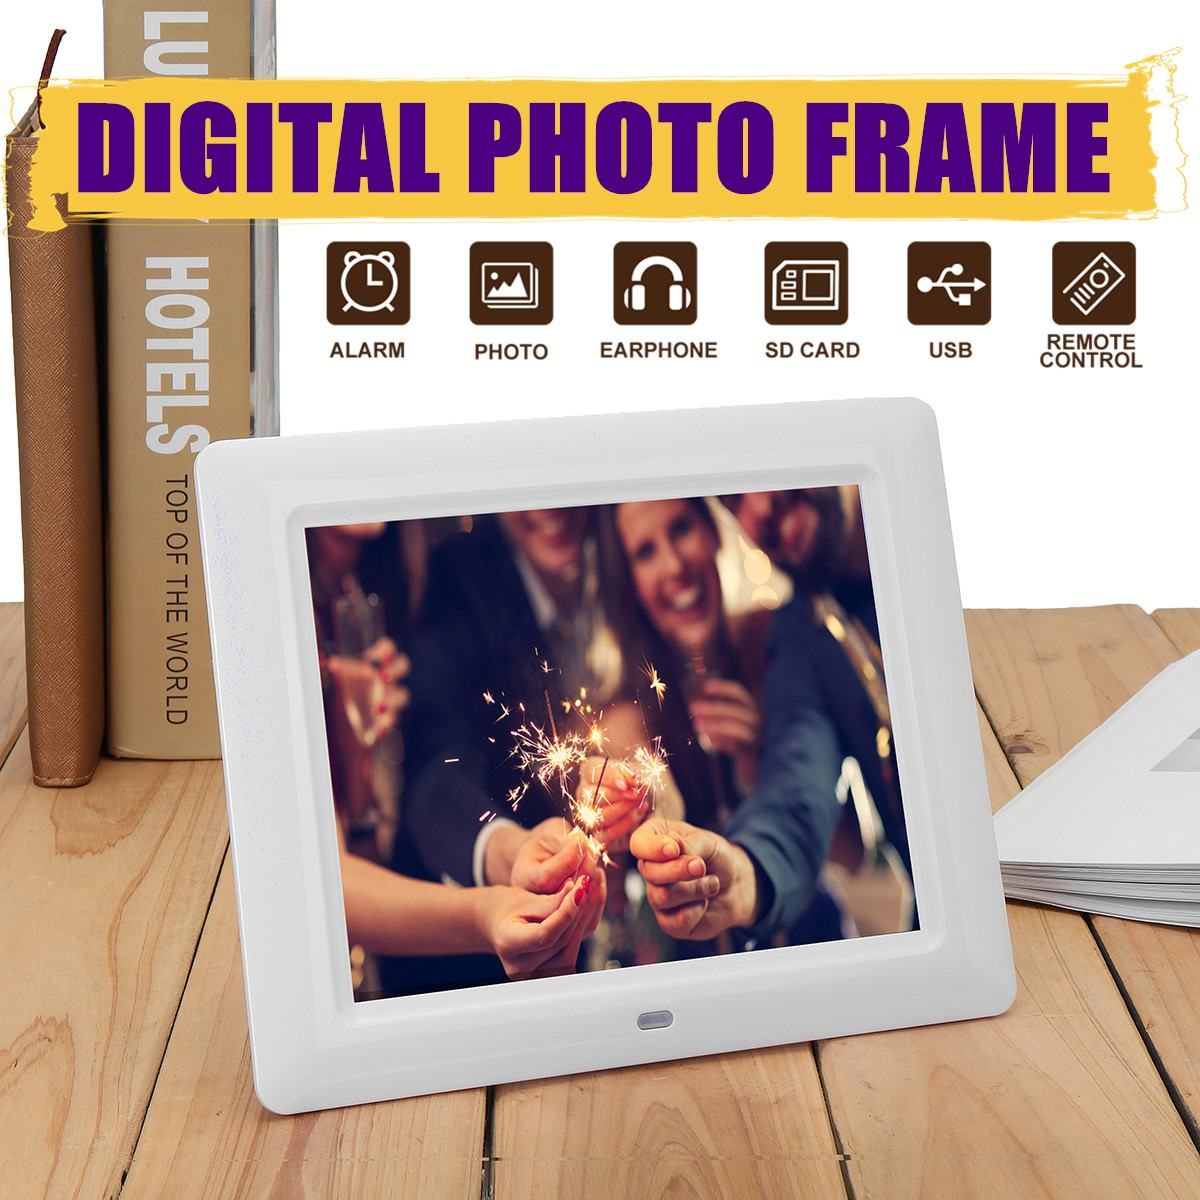 Multi functional 8 Inch TFT LCD HD Digital Photo Frame Clock MP4 Movie Player Electronic Album With Remote Control 217x173x23mm